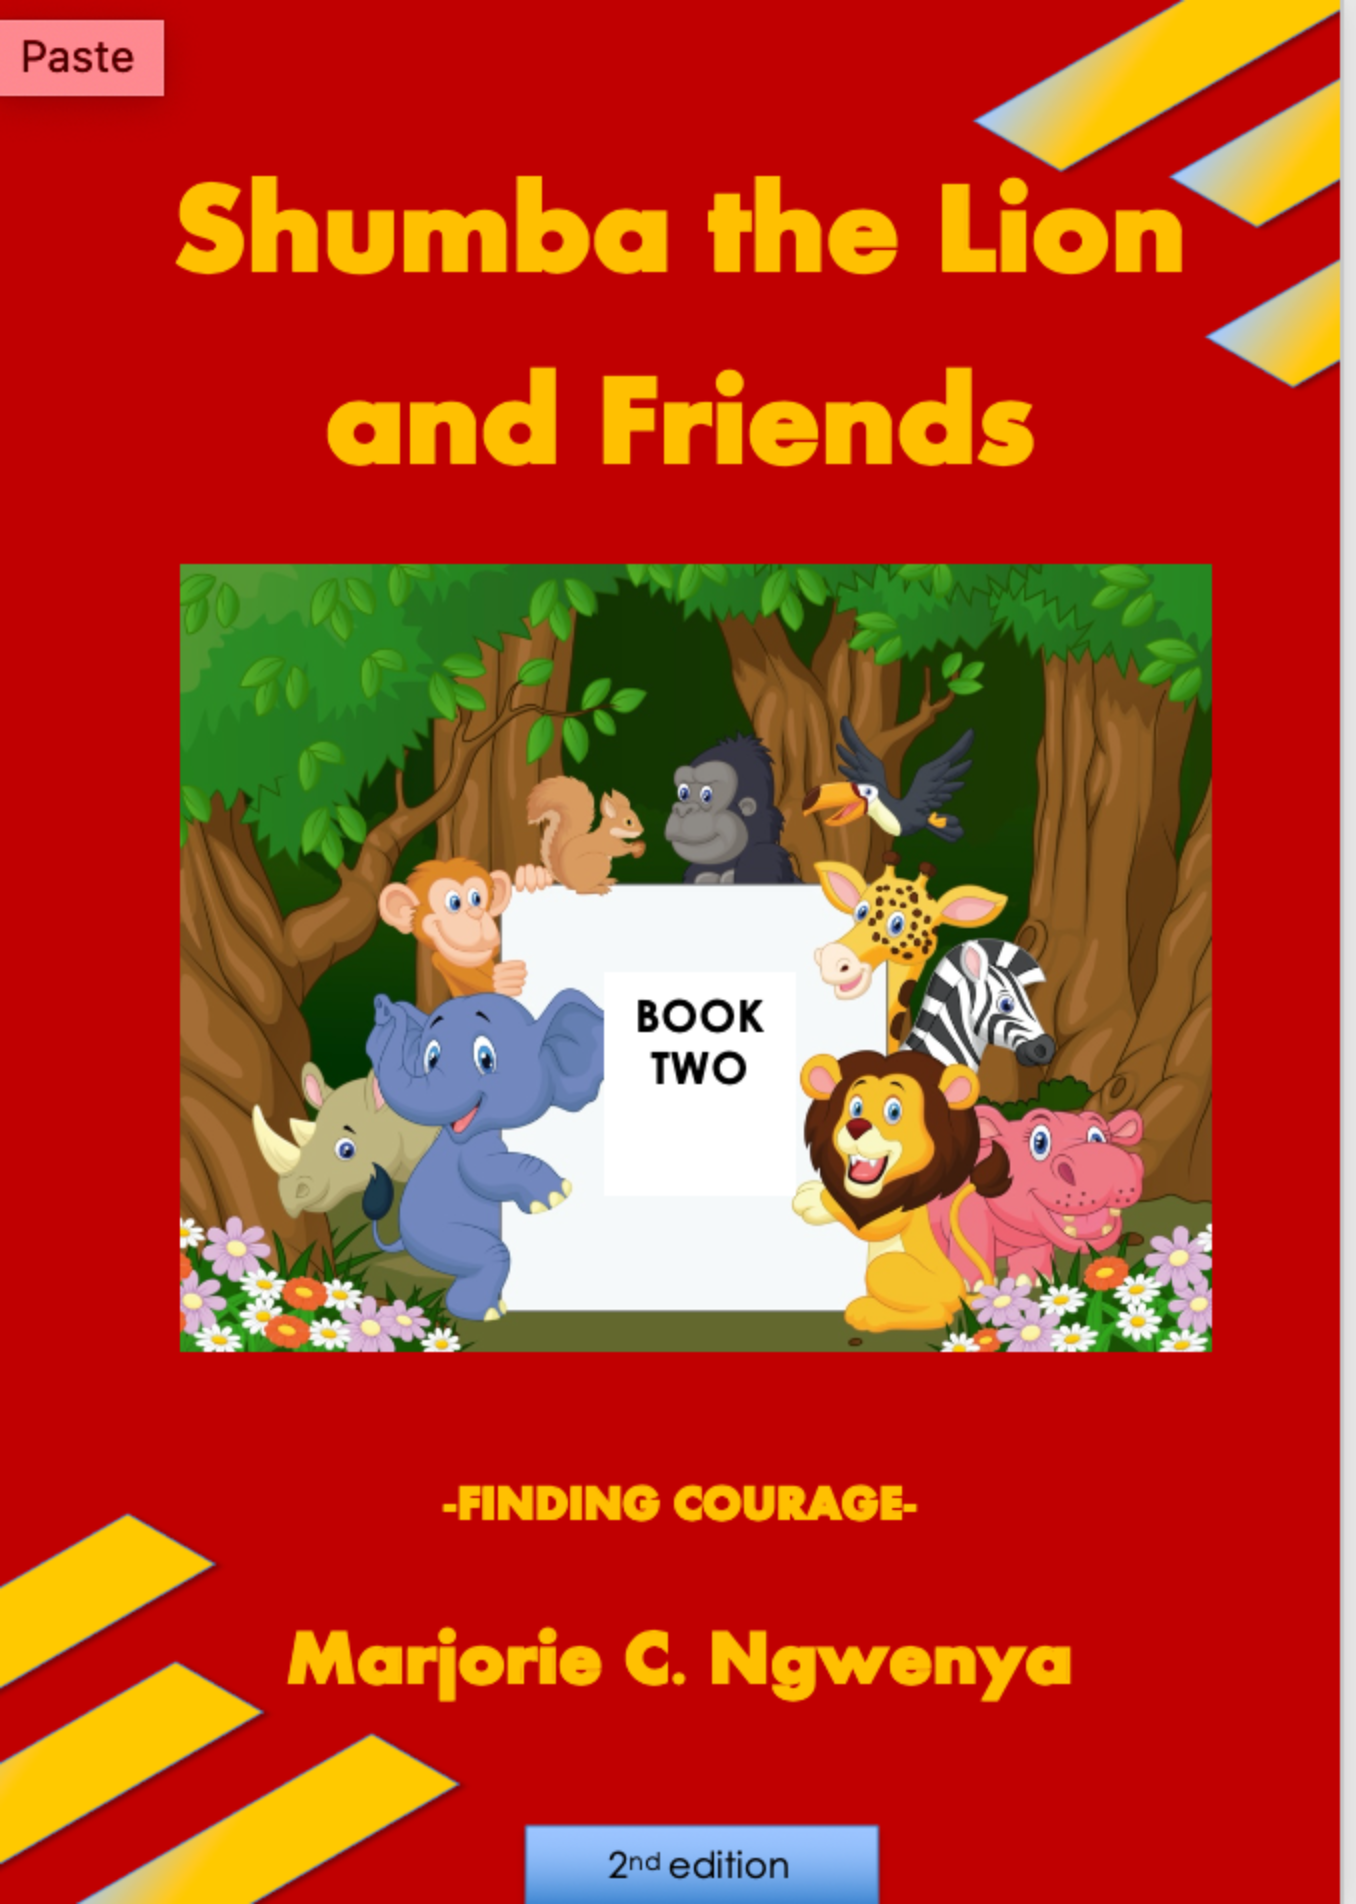 Shumba the Lion and Friends: Book 2 - Finding Courage